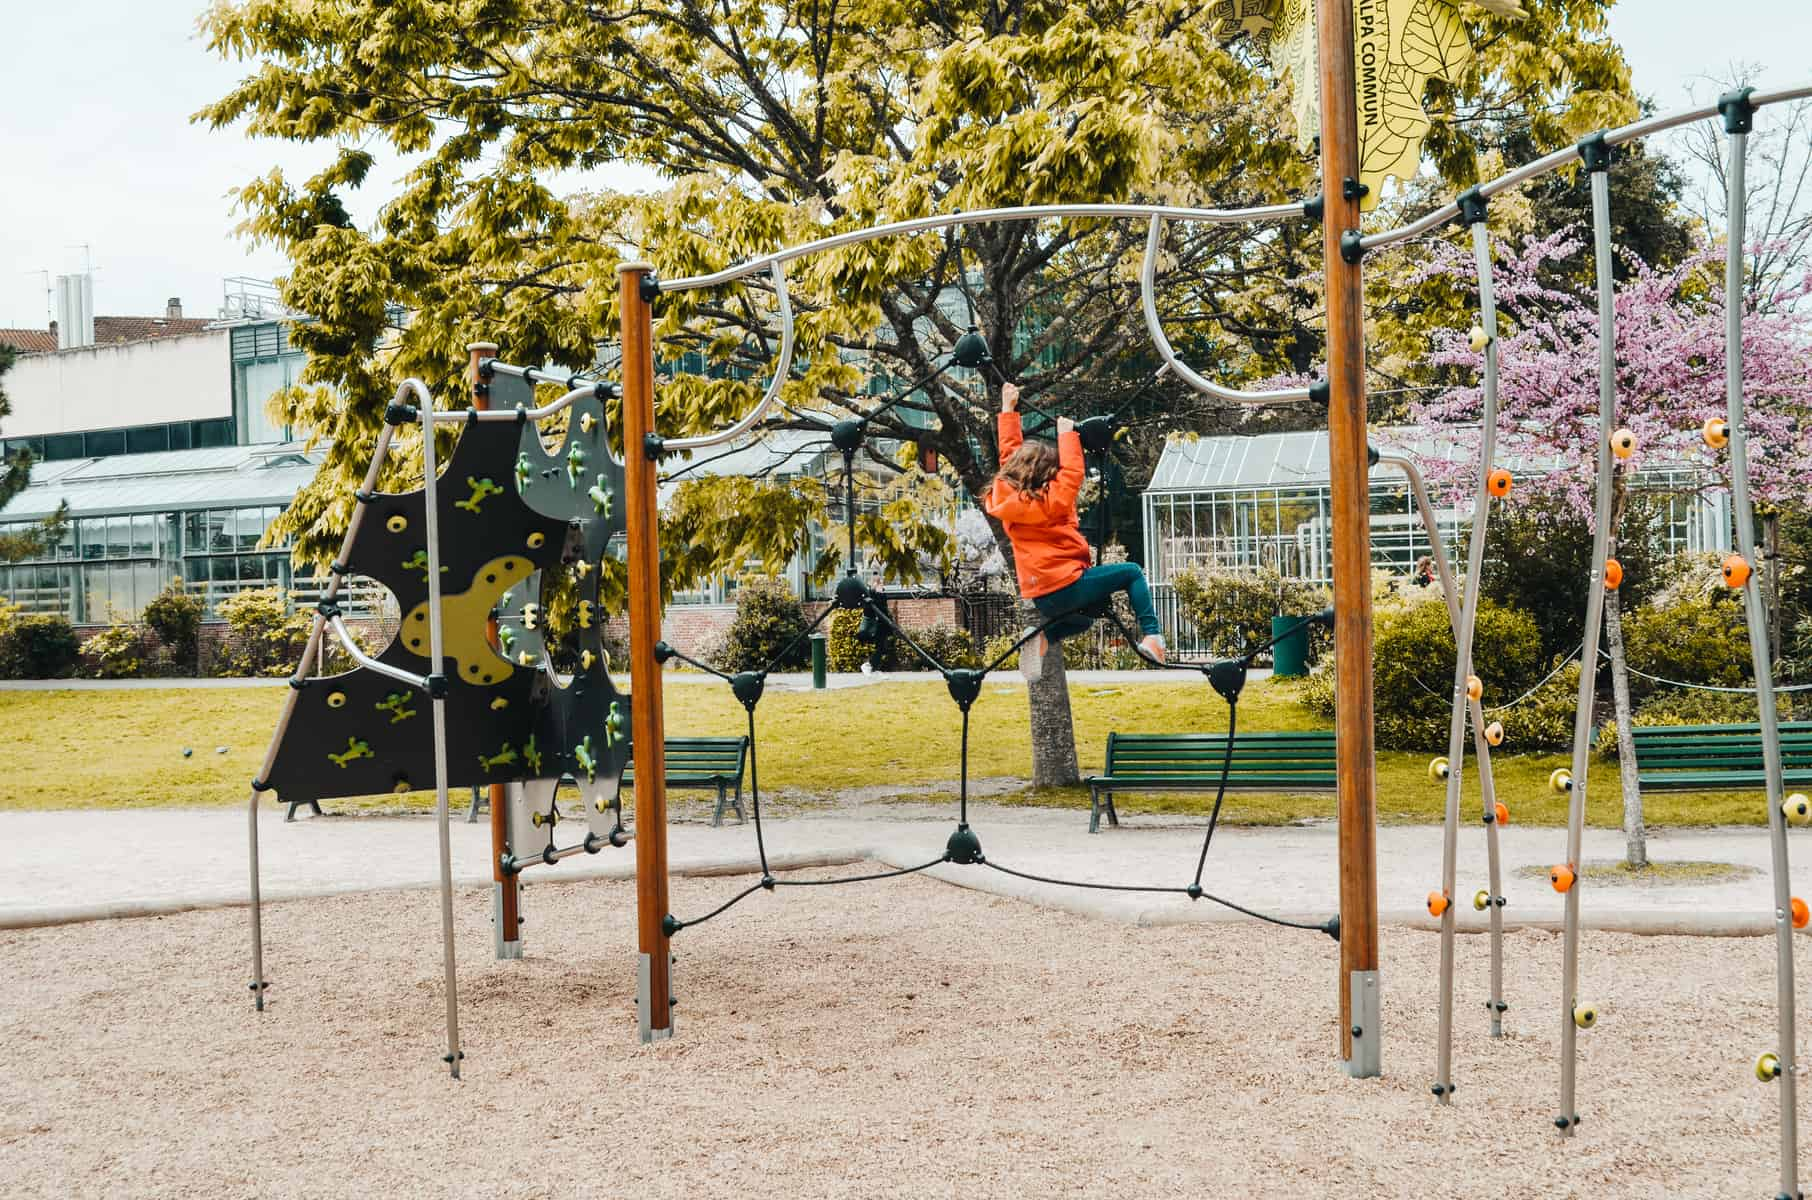 Spielplatz in Toulouse mit Kindern recommended by the urban kids